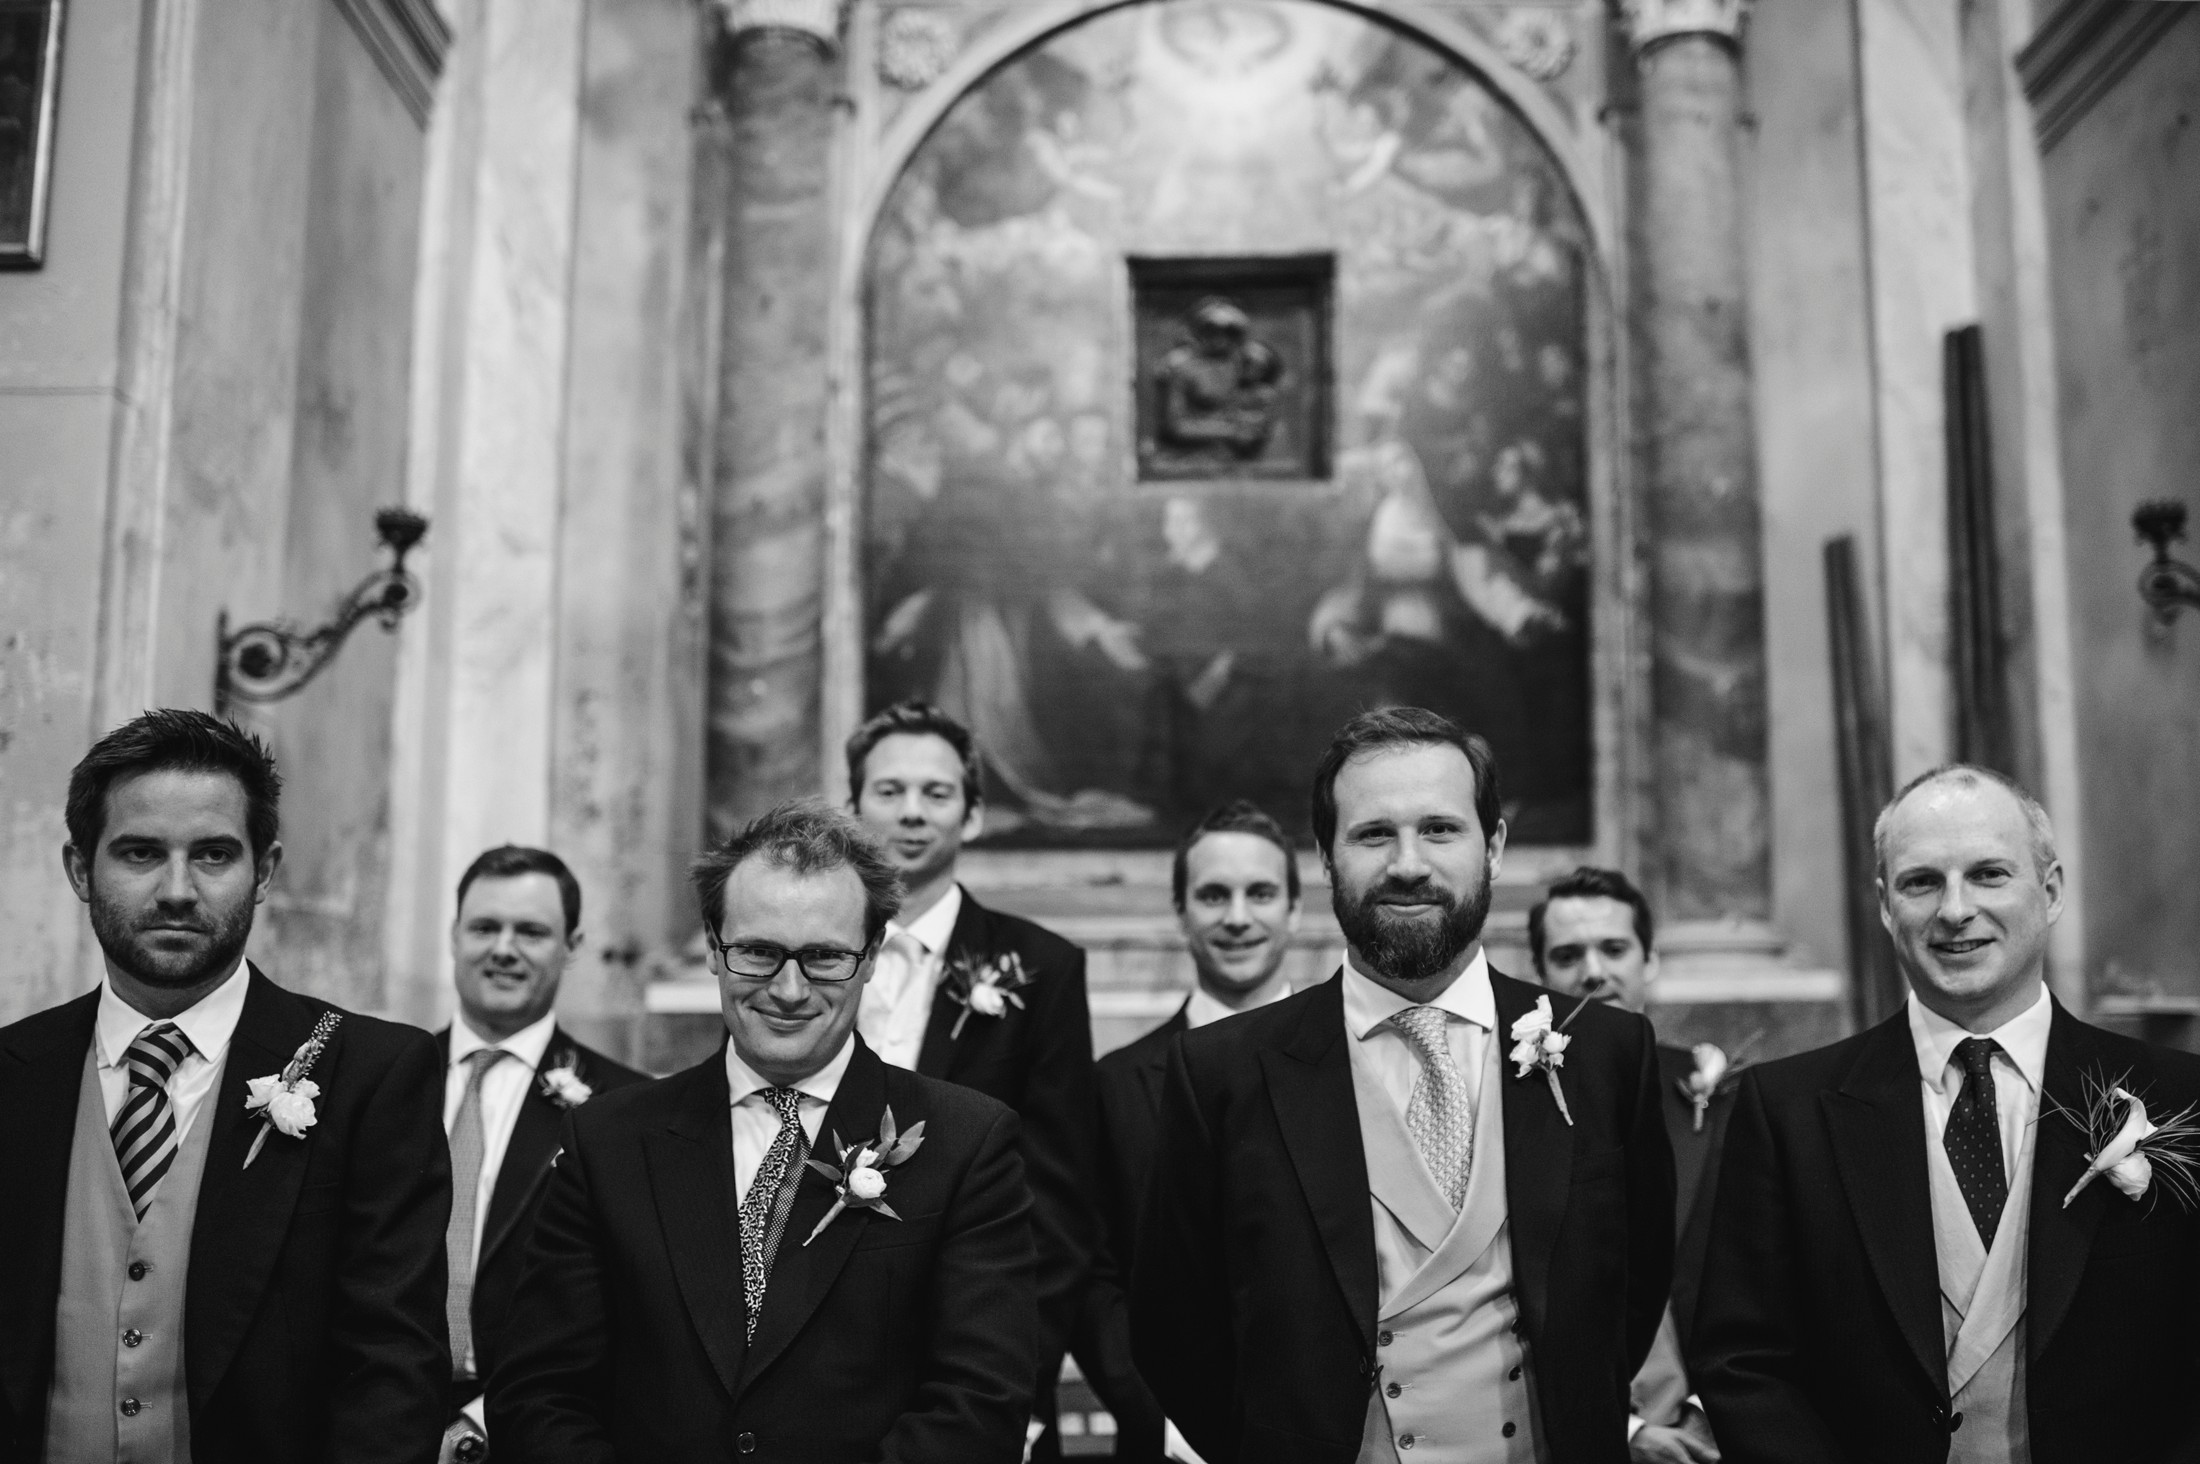 wedding in rome the groom with some friends inside the church